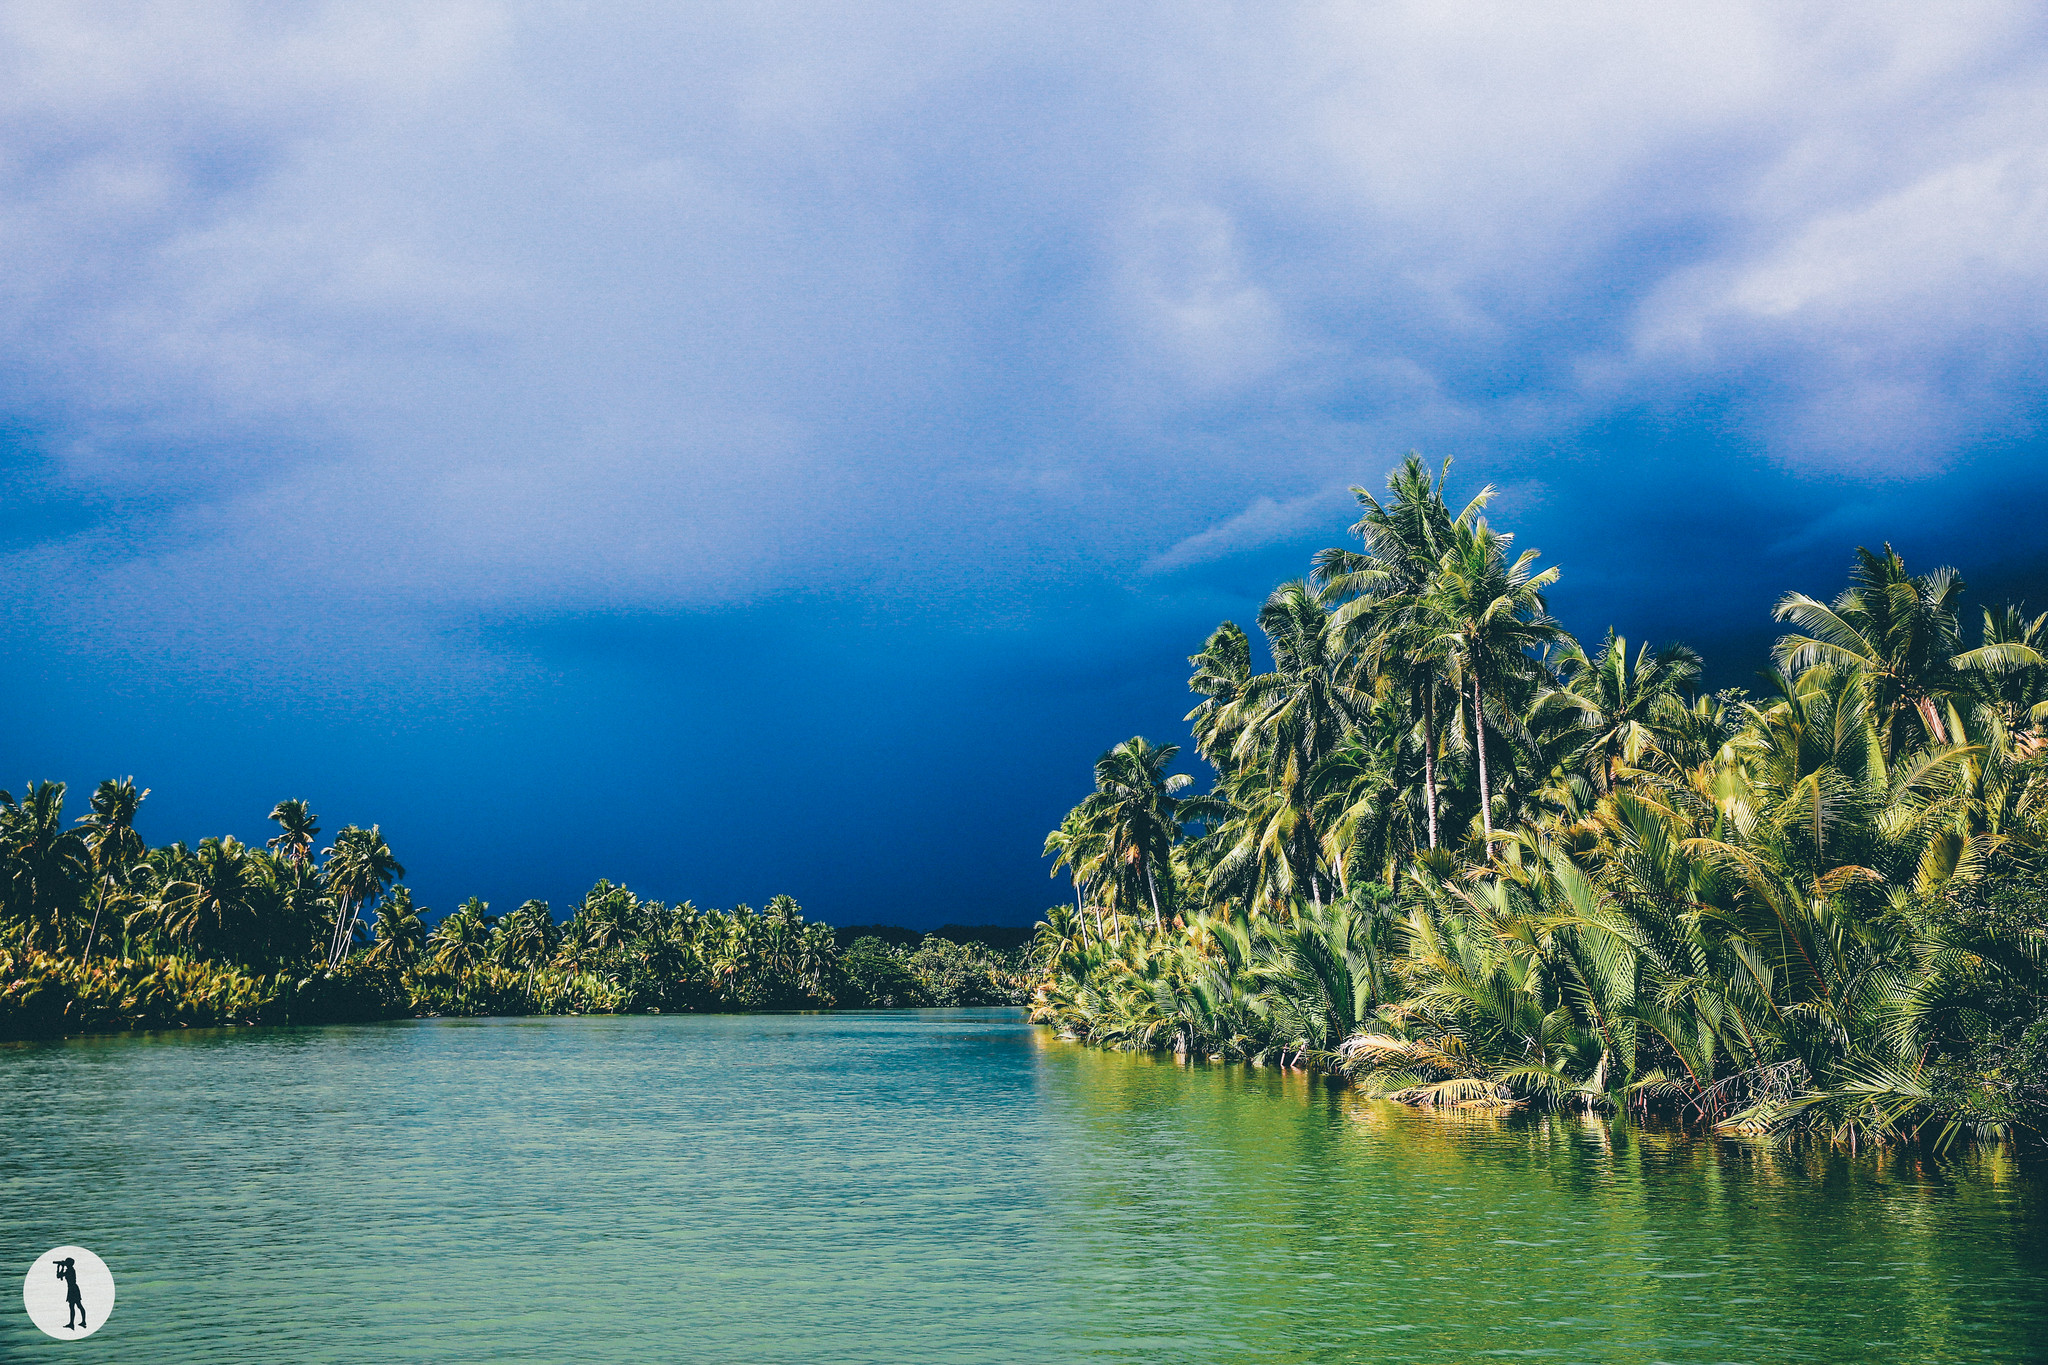 Travel to the Philippines - Bohol